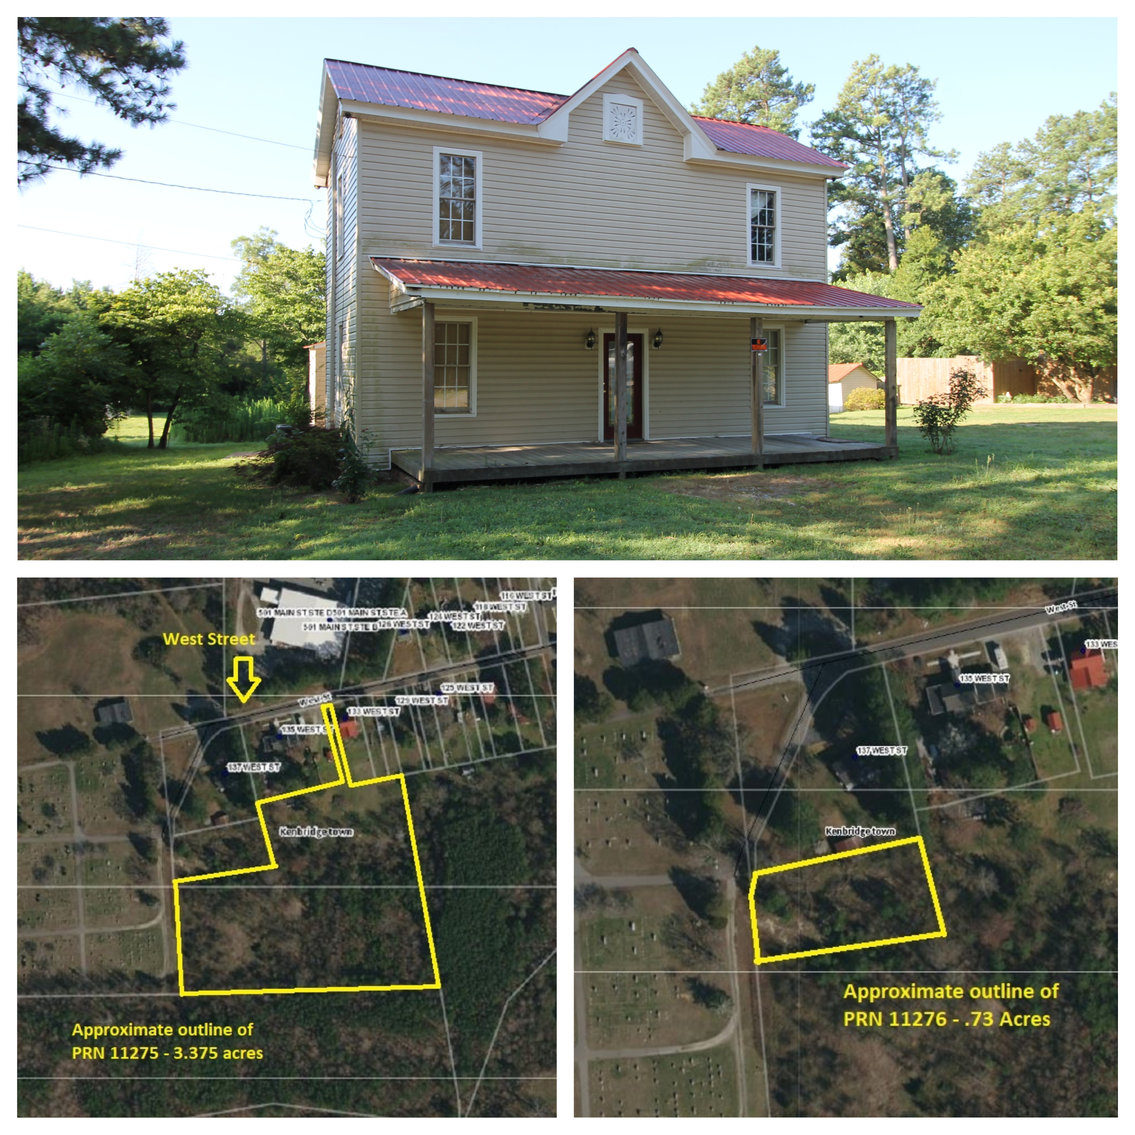 Image for Home & Lots - 3 BR/1 BA Home on .3 +/- Acre Lot AND Adjacent 3.3 +/- Acre & .7 +/- Acre Lots--SELLS to the HIGHEST BIDDER!!